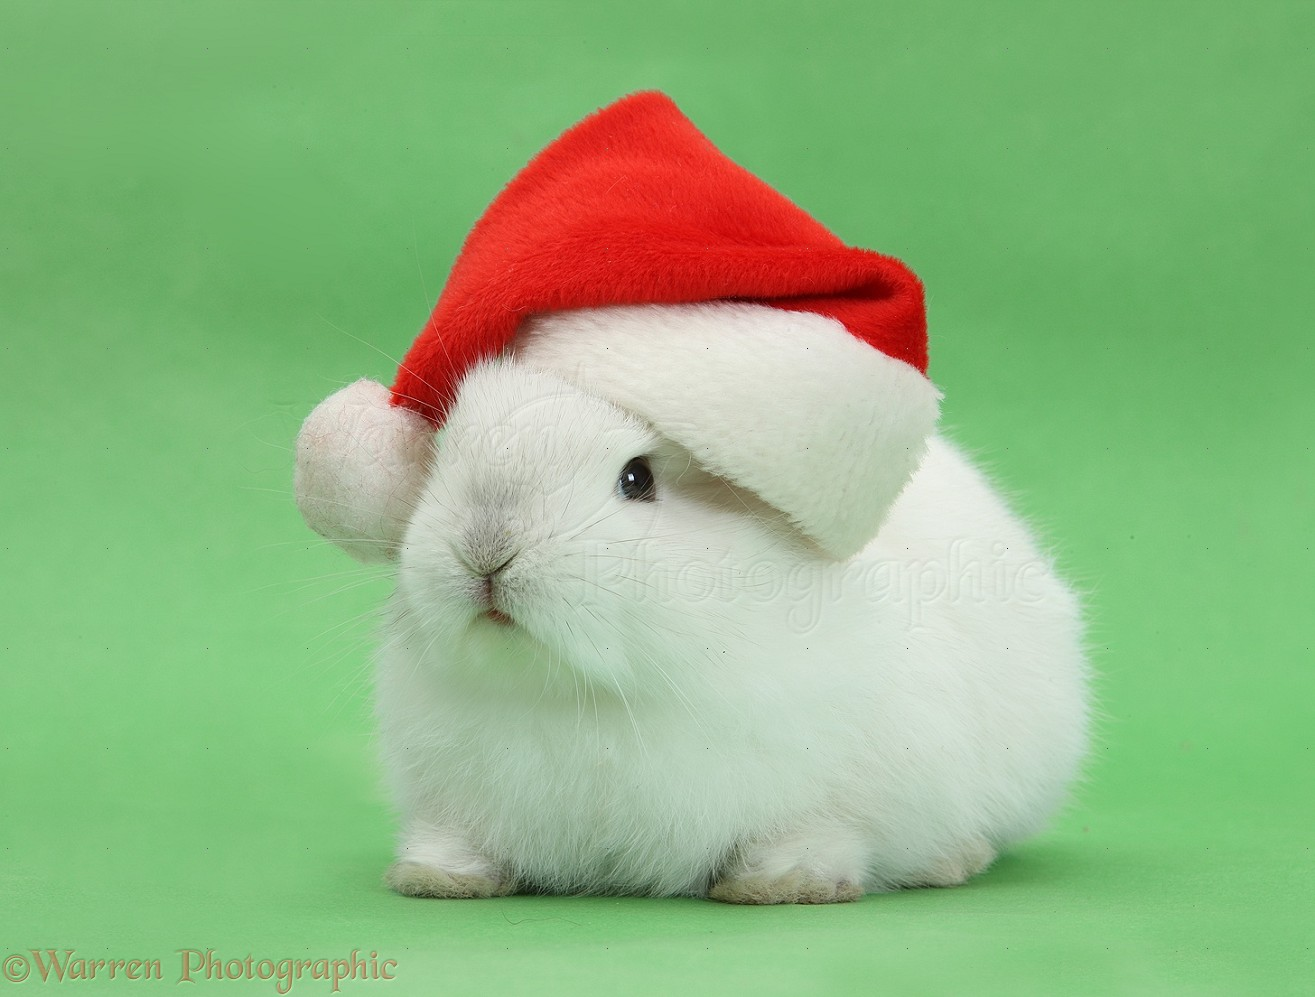 More bunnies with hats christmas hat on a squishy looking bunny